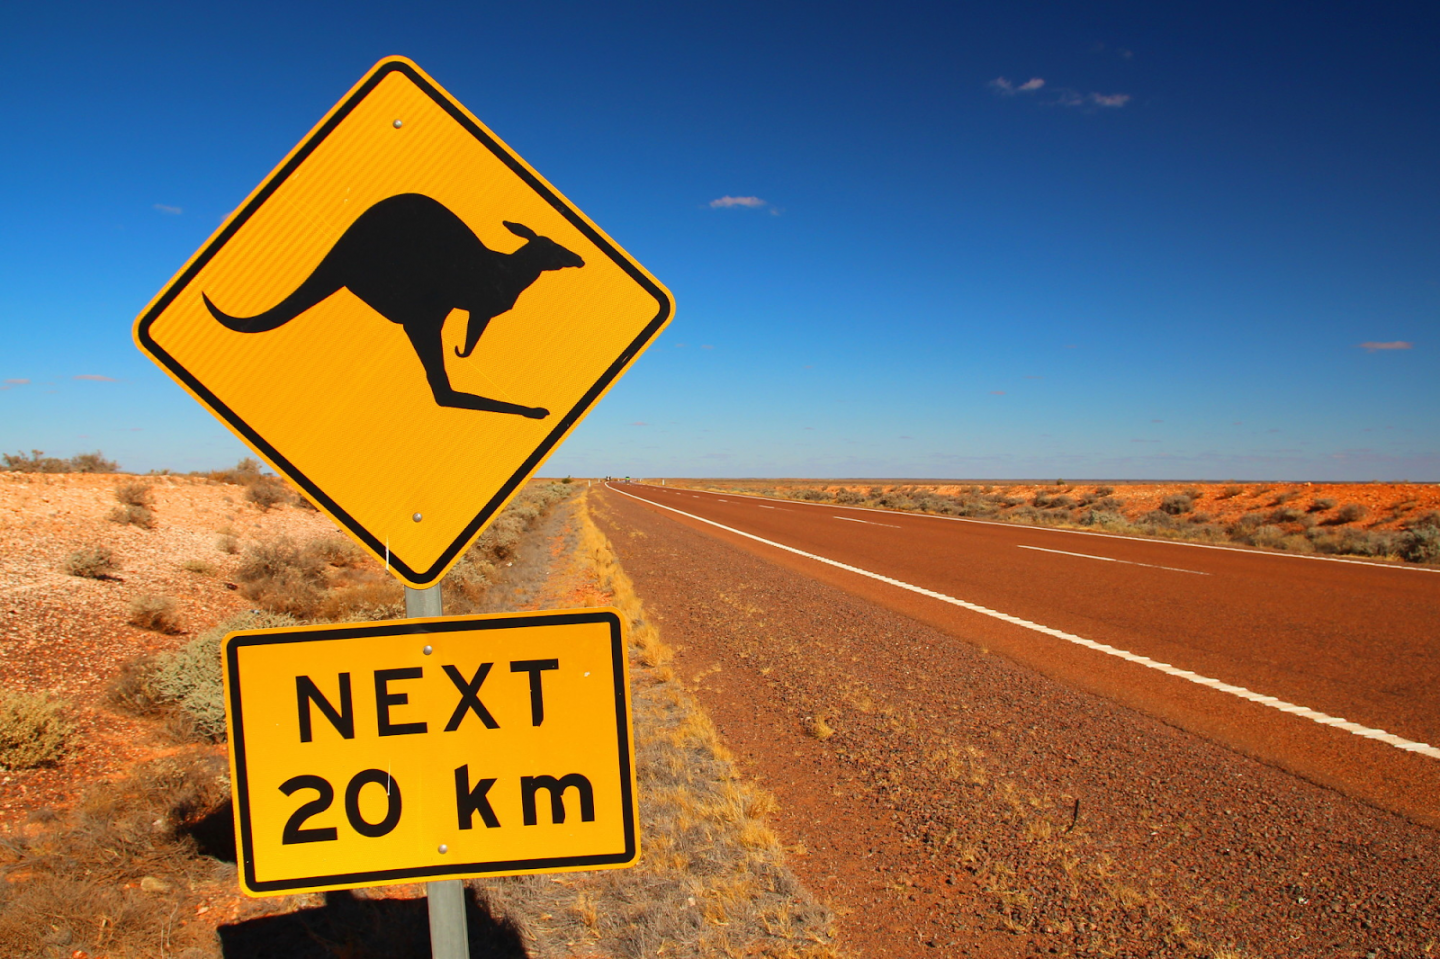 PARTY DOWN UNDER: 6 TRAVEL TIPS FOR AUSTRALIA